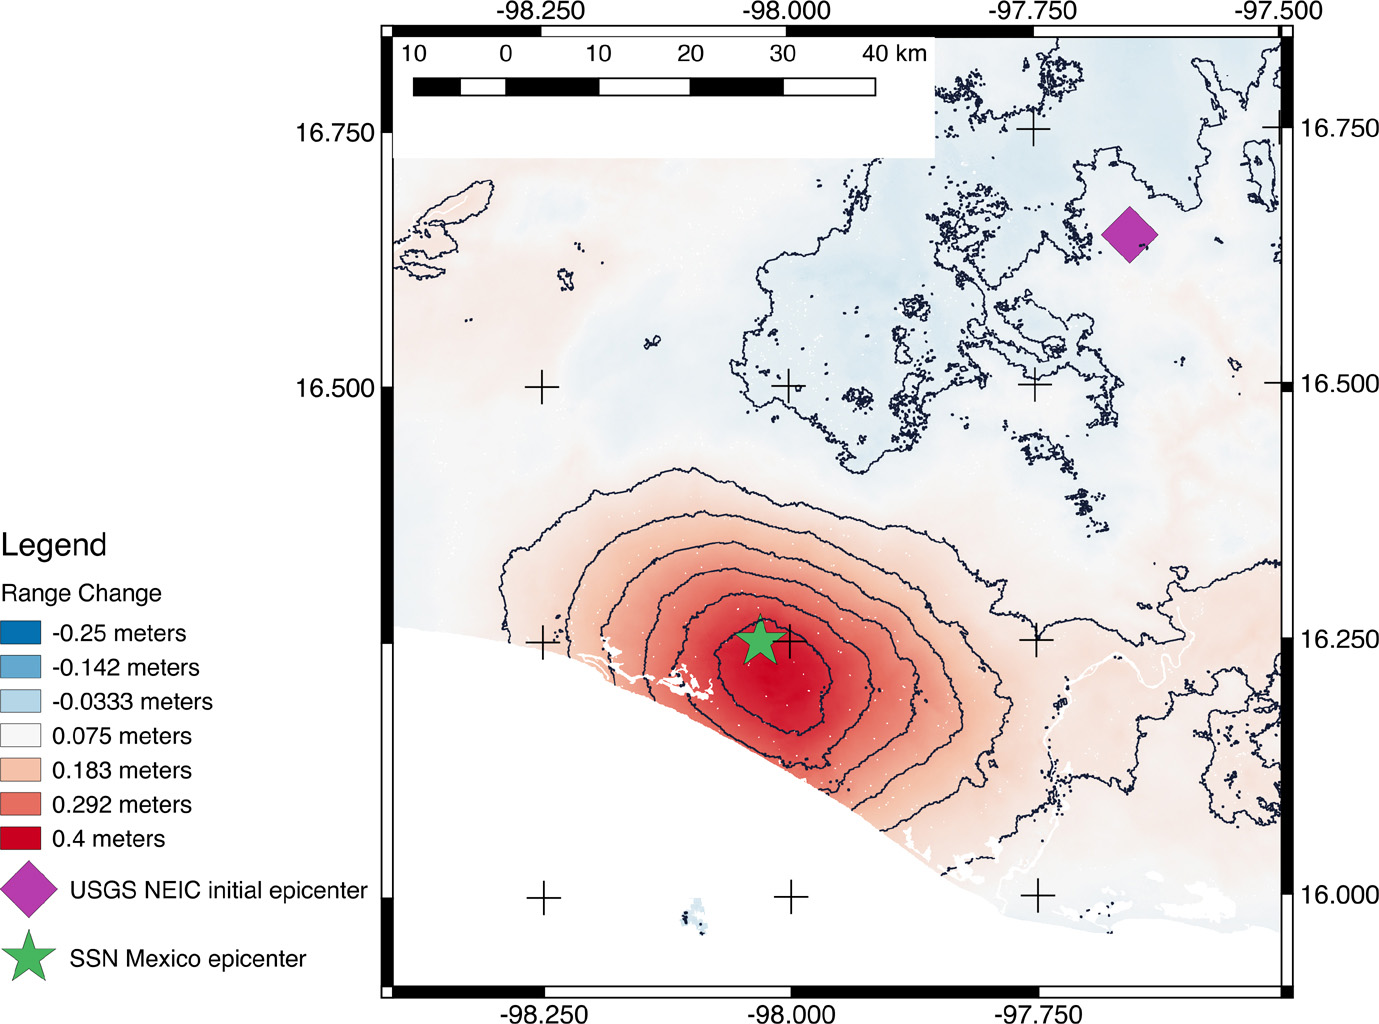 Satellites measure surface deformation due to earthquake 91